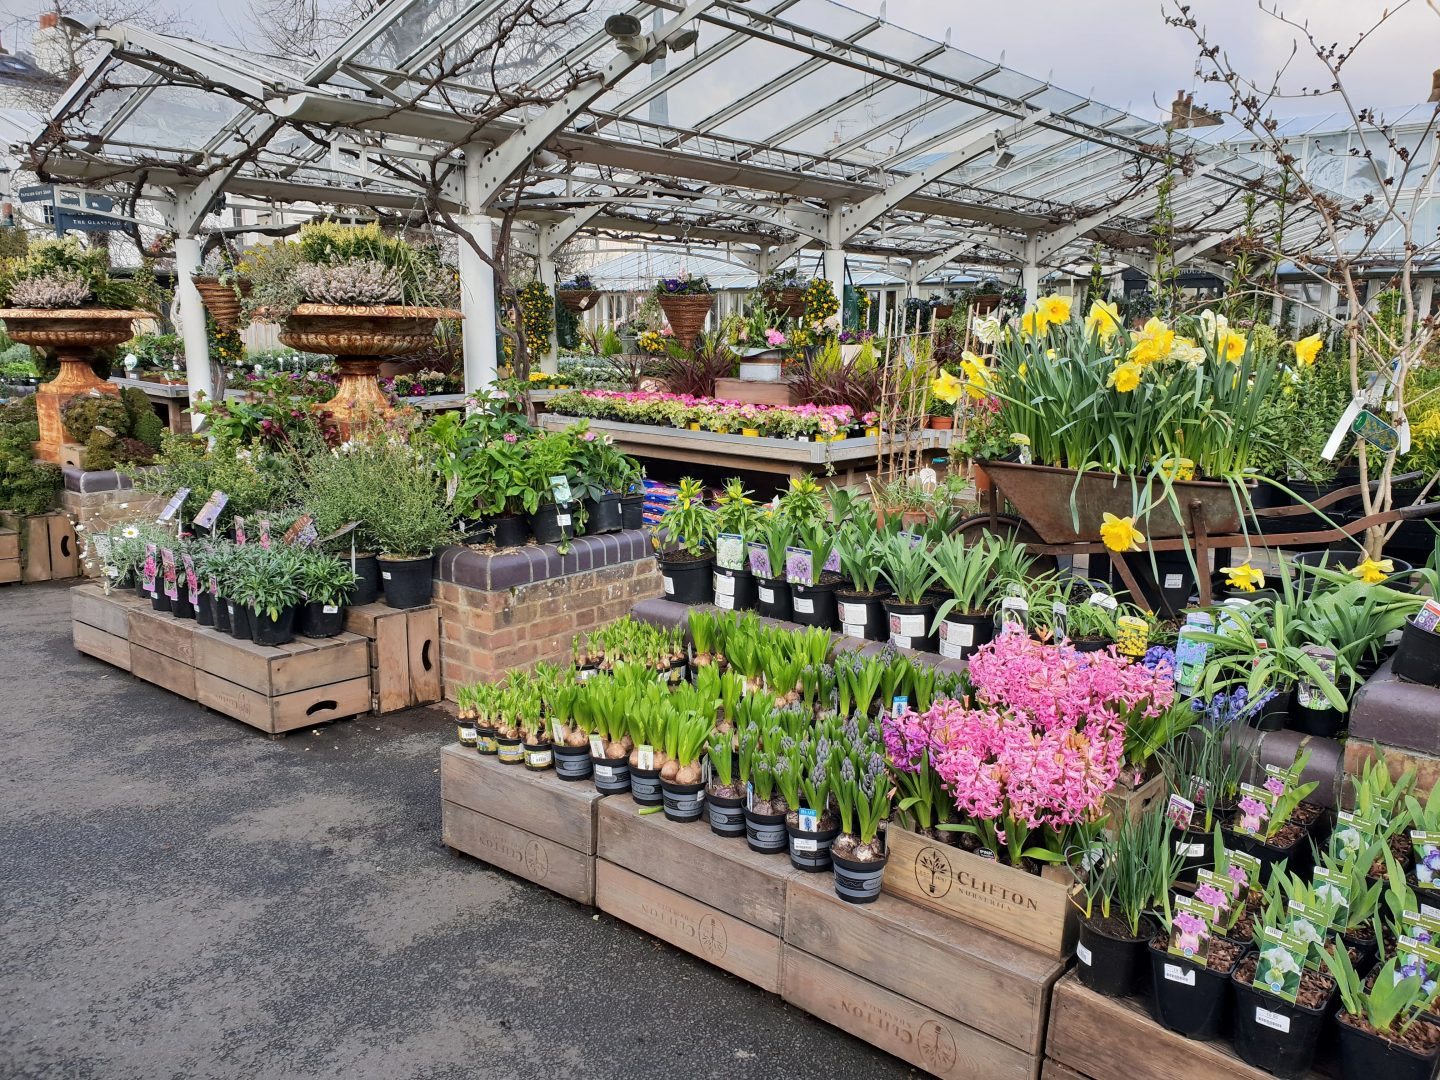 Spring flowers at Clifton Nurseries in Maida Vale, London